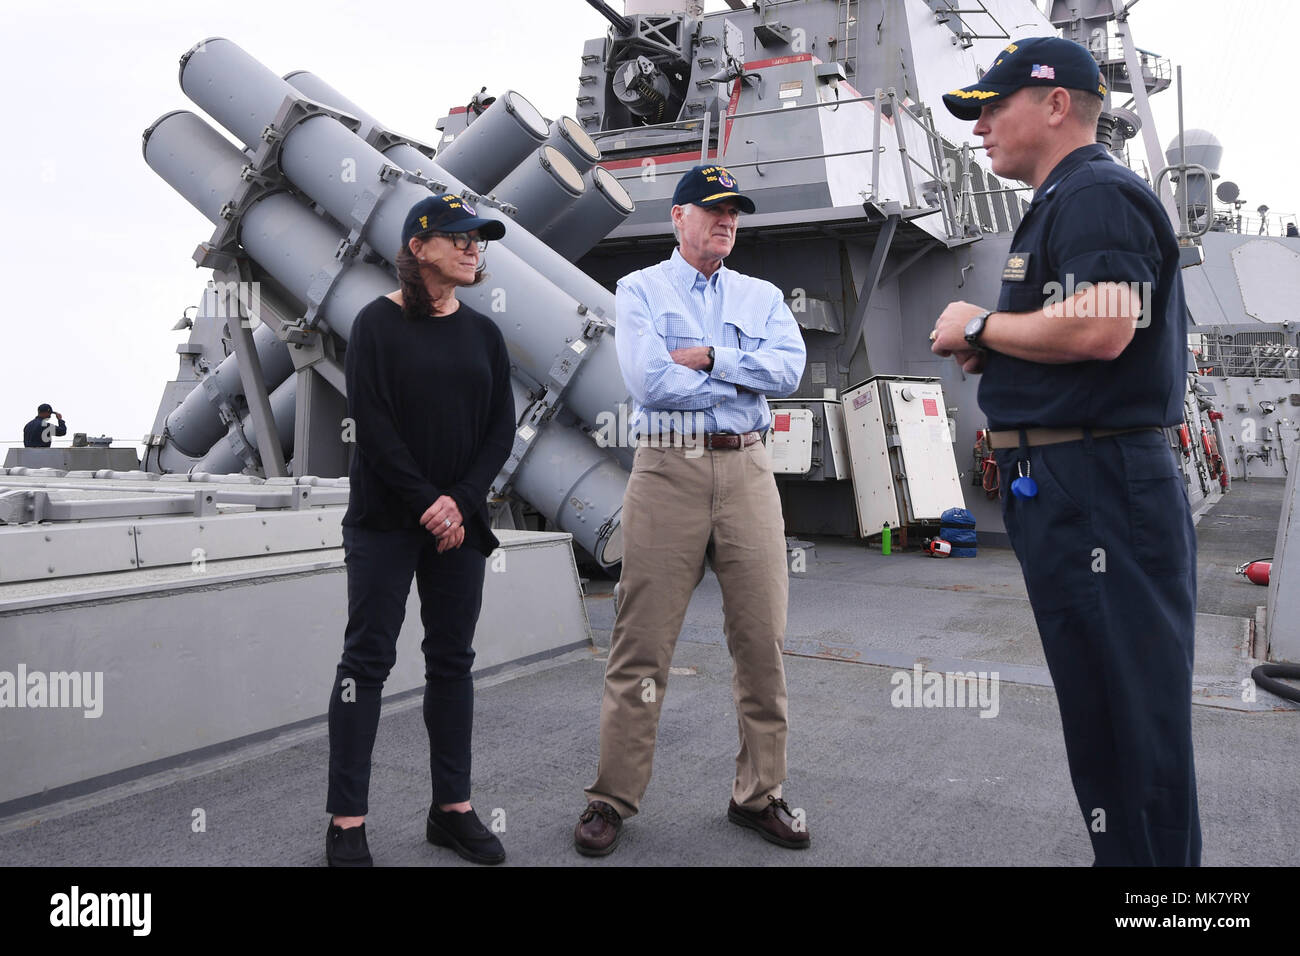 ARABIAN GULF (Nov. 23, 2017) Cmdr. Jeffrey Tamulevich (right), commanding officer of the Arleigh Burke-class guided-missile destroyer USS Hopper (DDG 70), explains the ship's vertical launching system to Secretary of the Navy Richard V. Spencer and his wife, Sarah Pauline Spencer, on Thanksgiving Day. Hopper is deployed to the U.S. 5th Fleet area of operations in support of maritime security operations to reassure allies and partners and preserve the freedom of navigation and the free flow of commerce in the region. (U.S. Navy photo by Mass Communication Specialist 2nd Class Kristina Young/Rel - Stock Image